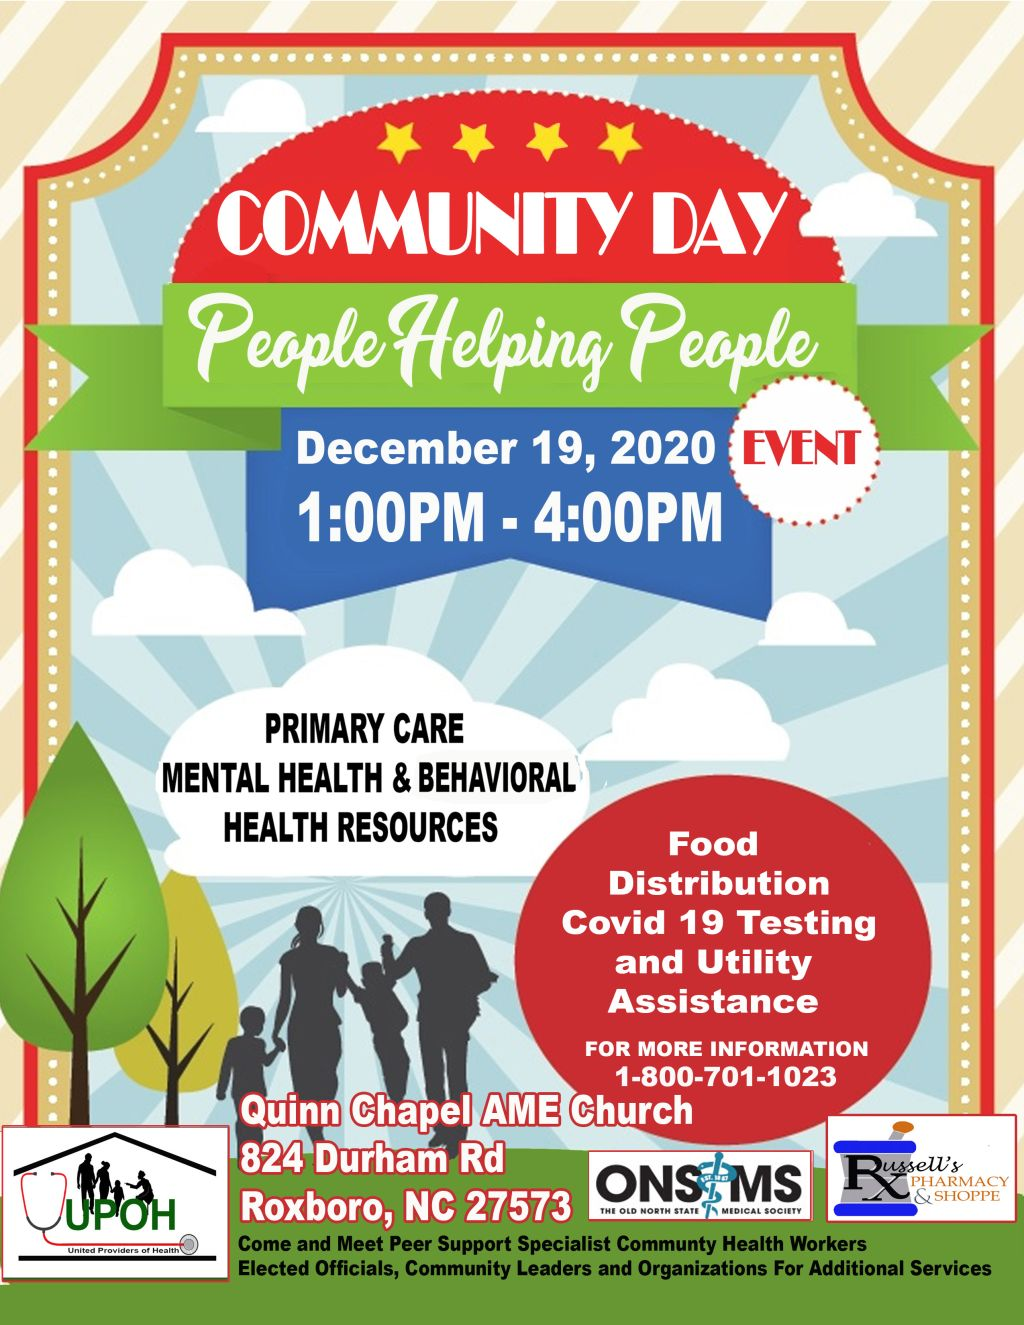 UPOH Community Day